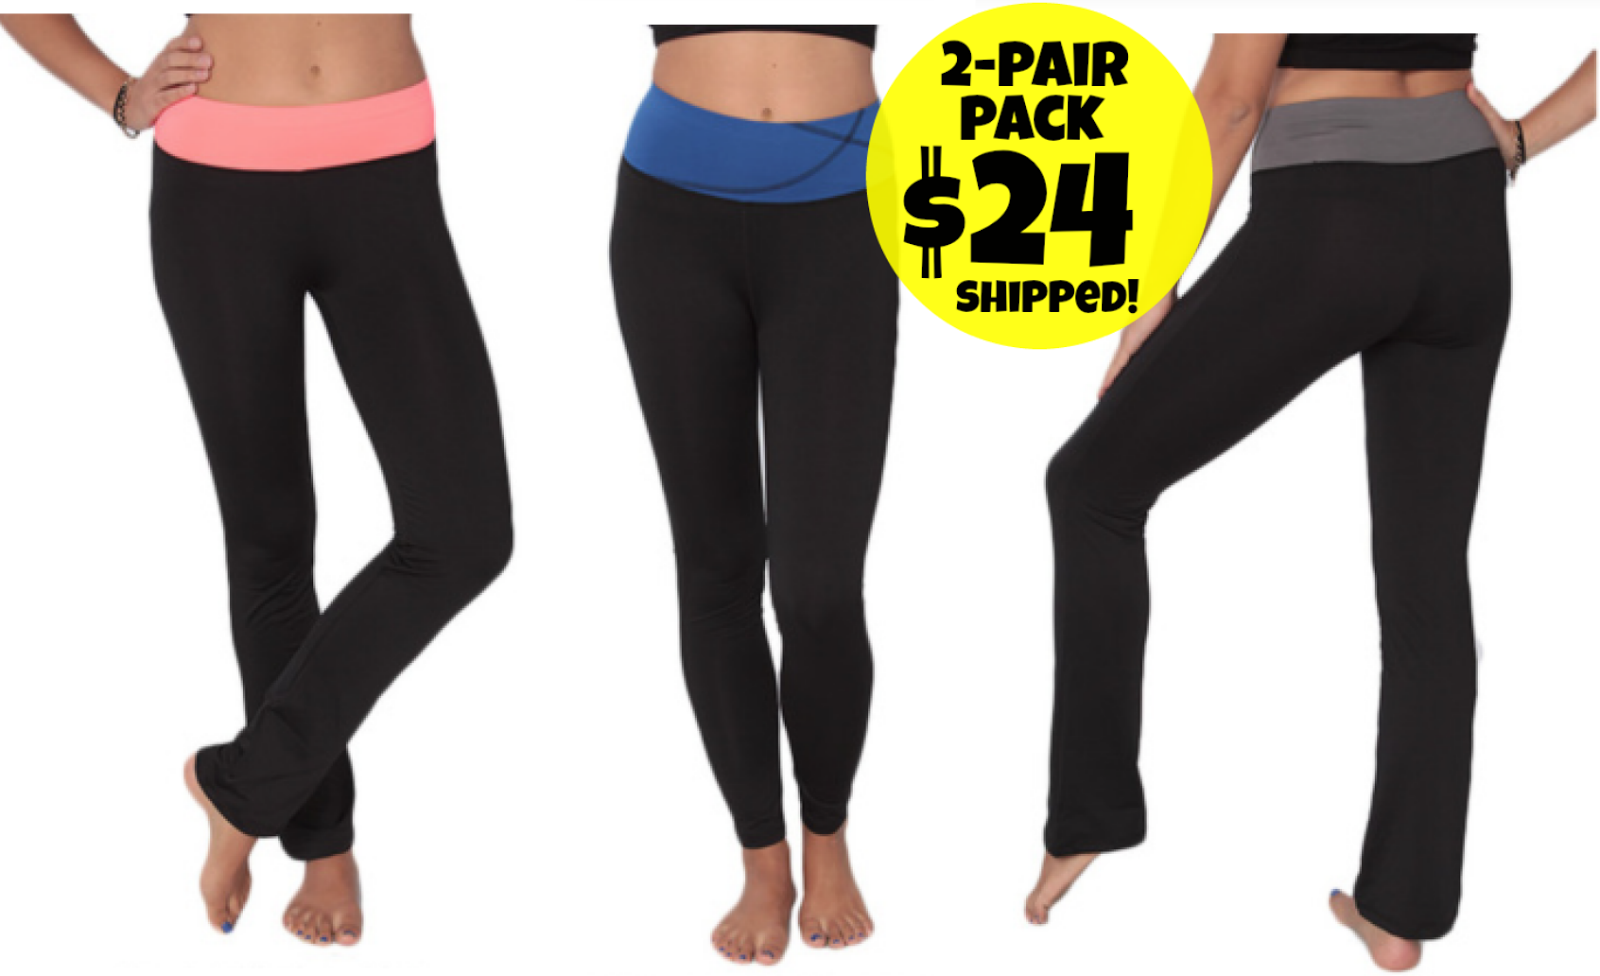 http://www.thebinderladies.com/2014/09/nomorerack-two-pair-pack-of-performance.html#.VBcQ3kvdtbw